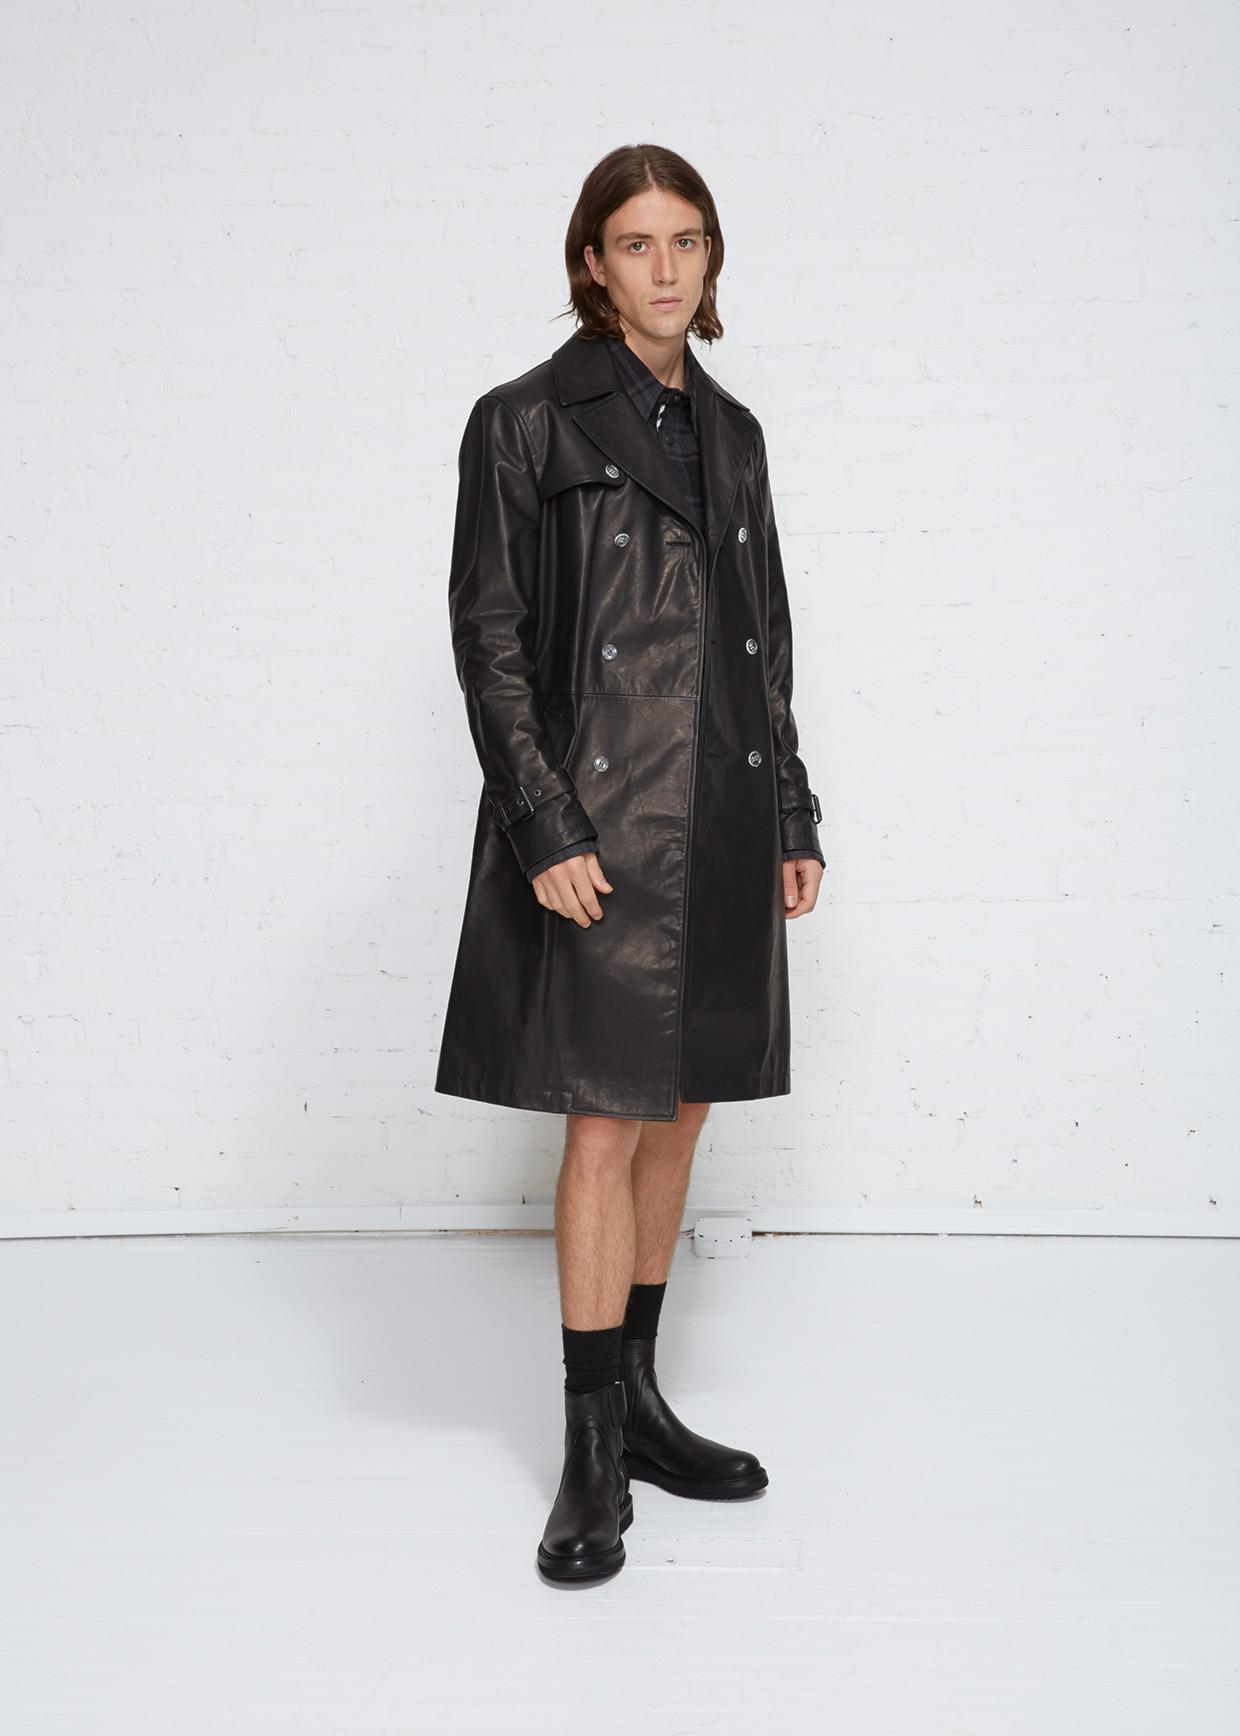 70d9be26bf4e Lyst - Off-White C O Virgil Abloh Blurred Trench in Black for Men